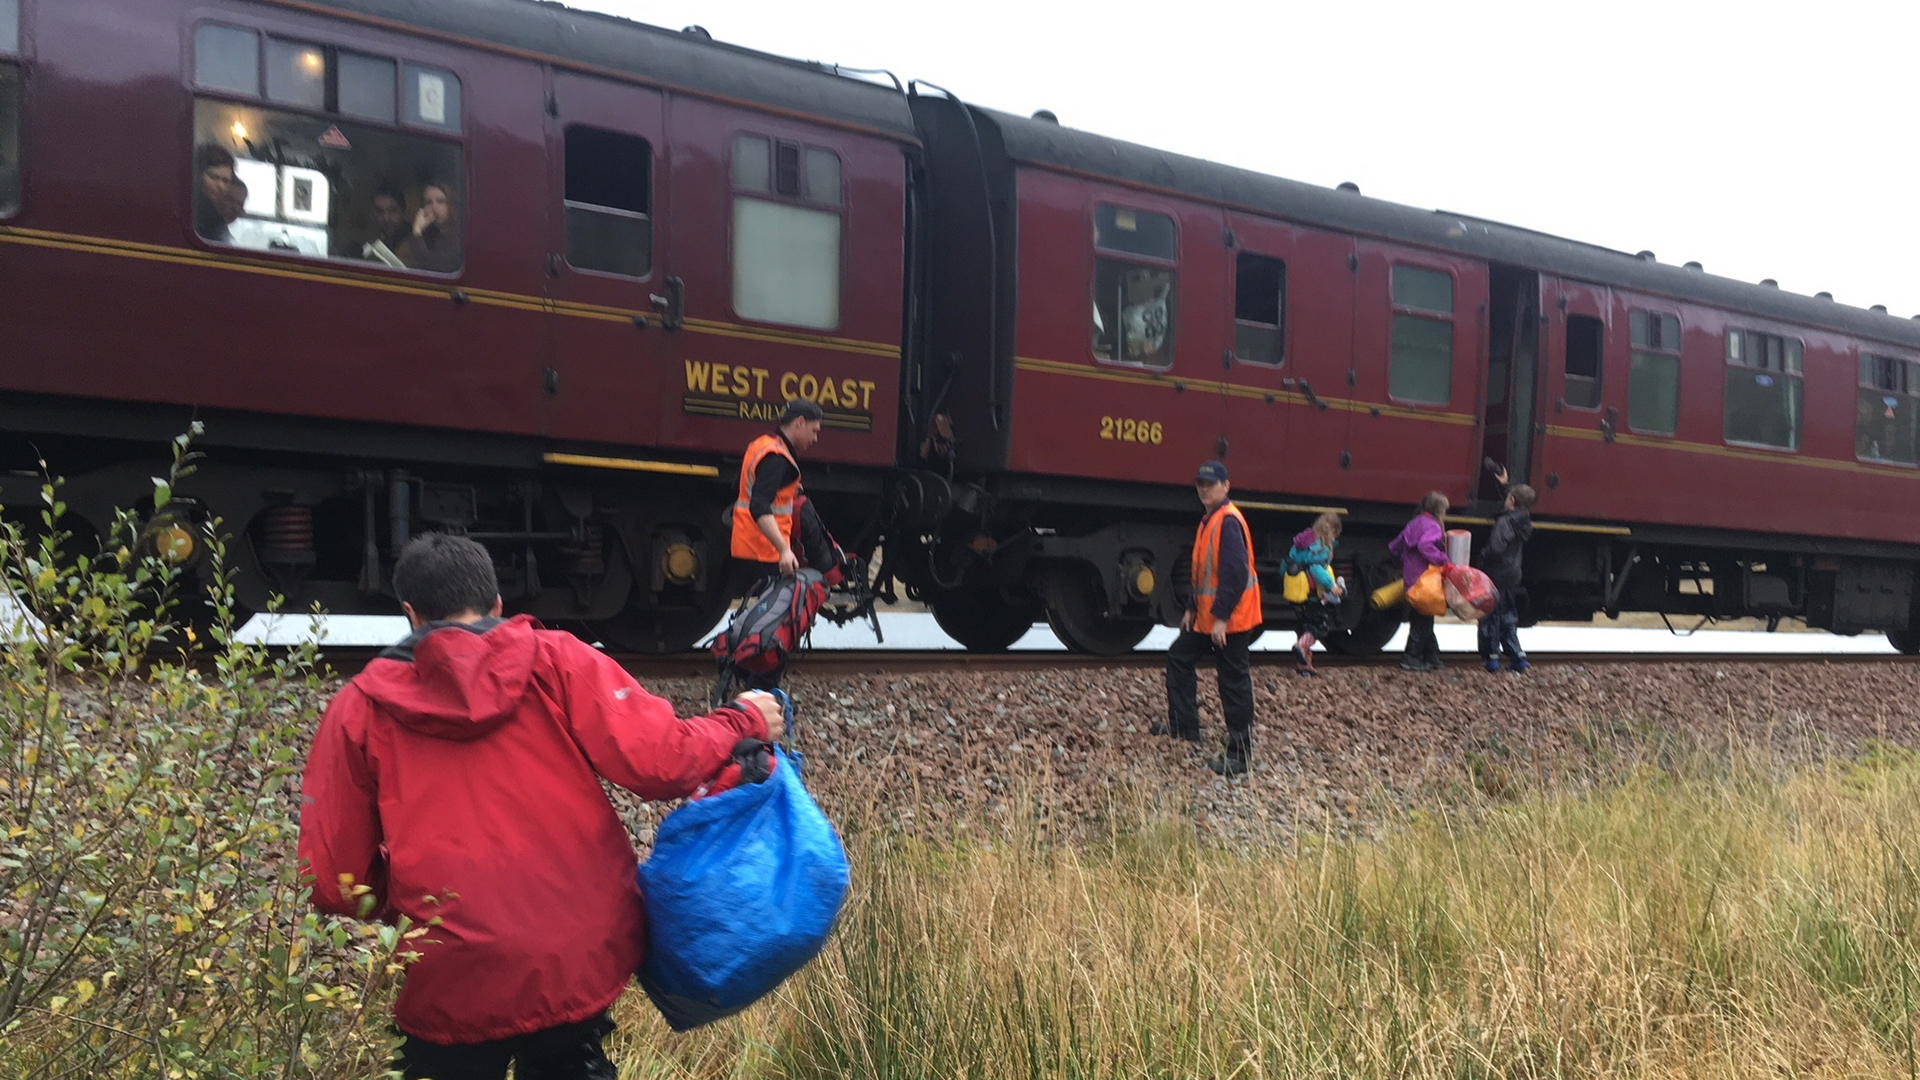 'You're not going to believe this': Family gets rescued by Hogwarts Express train